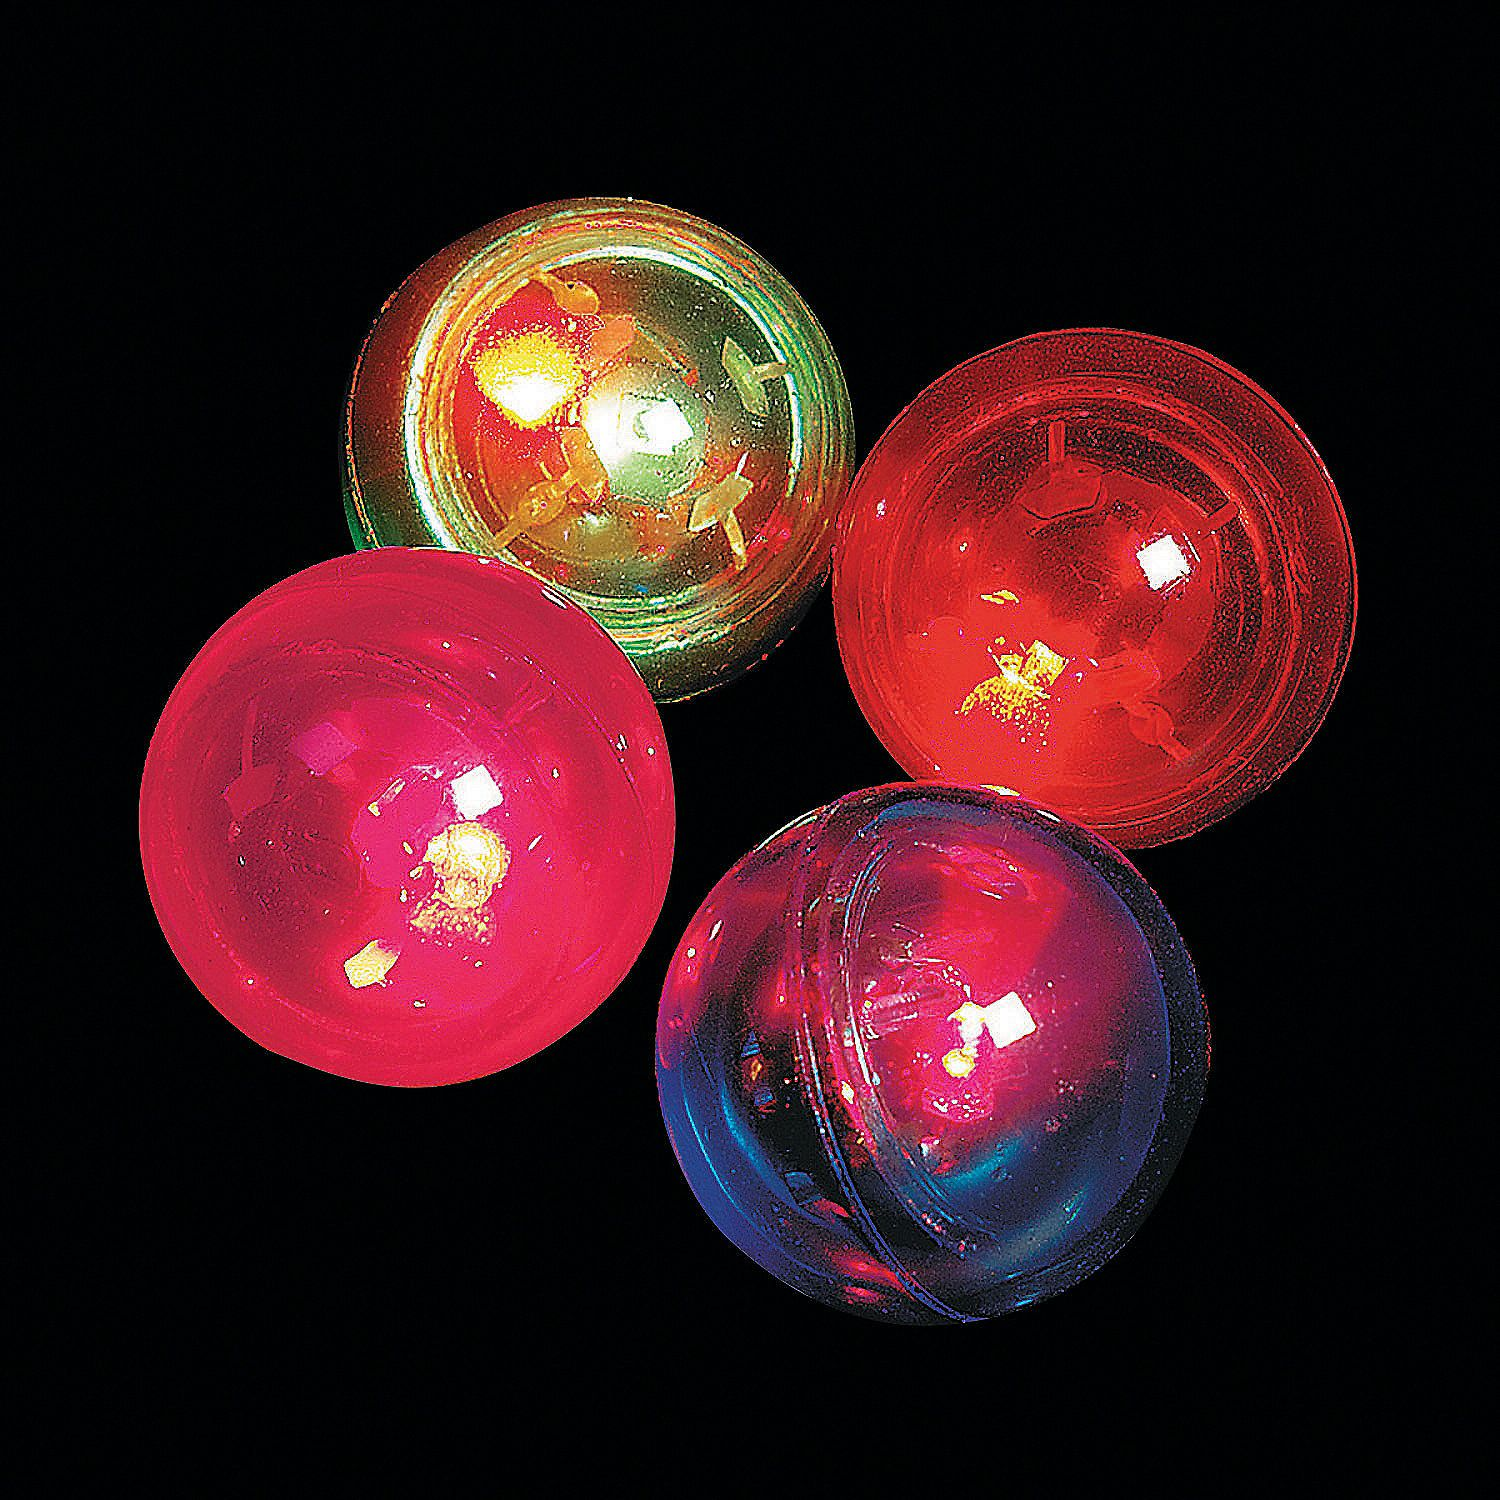 up partyslate collections lighting creative effects ixlib light rails balls tlc water led photo controlled on pros live event